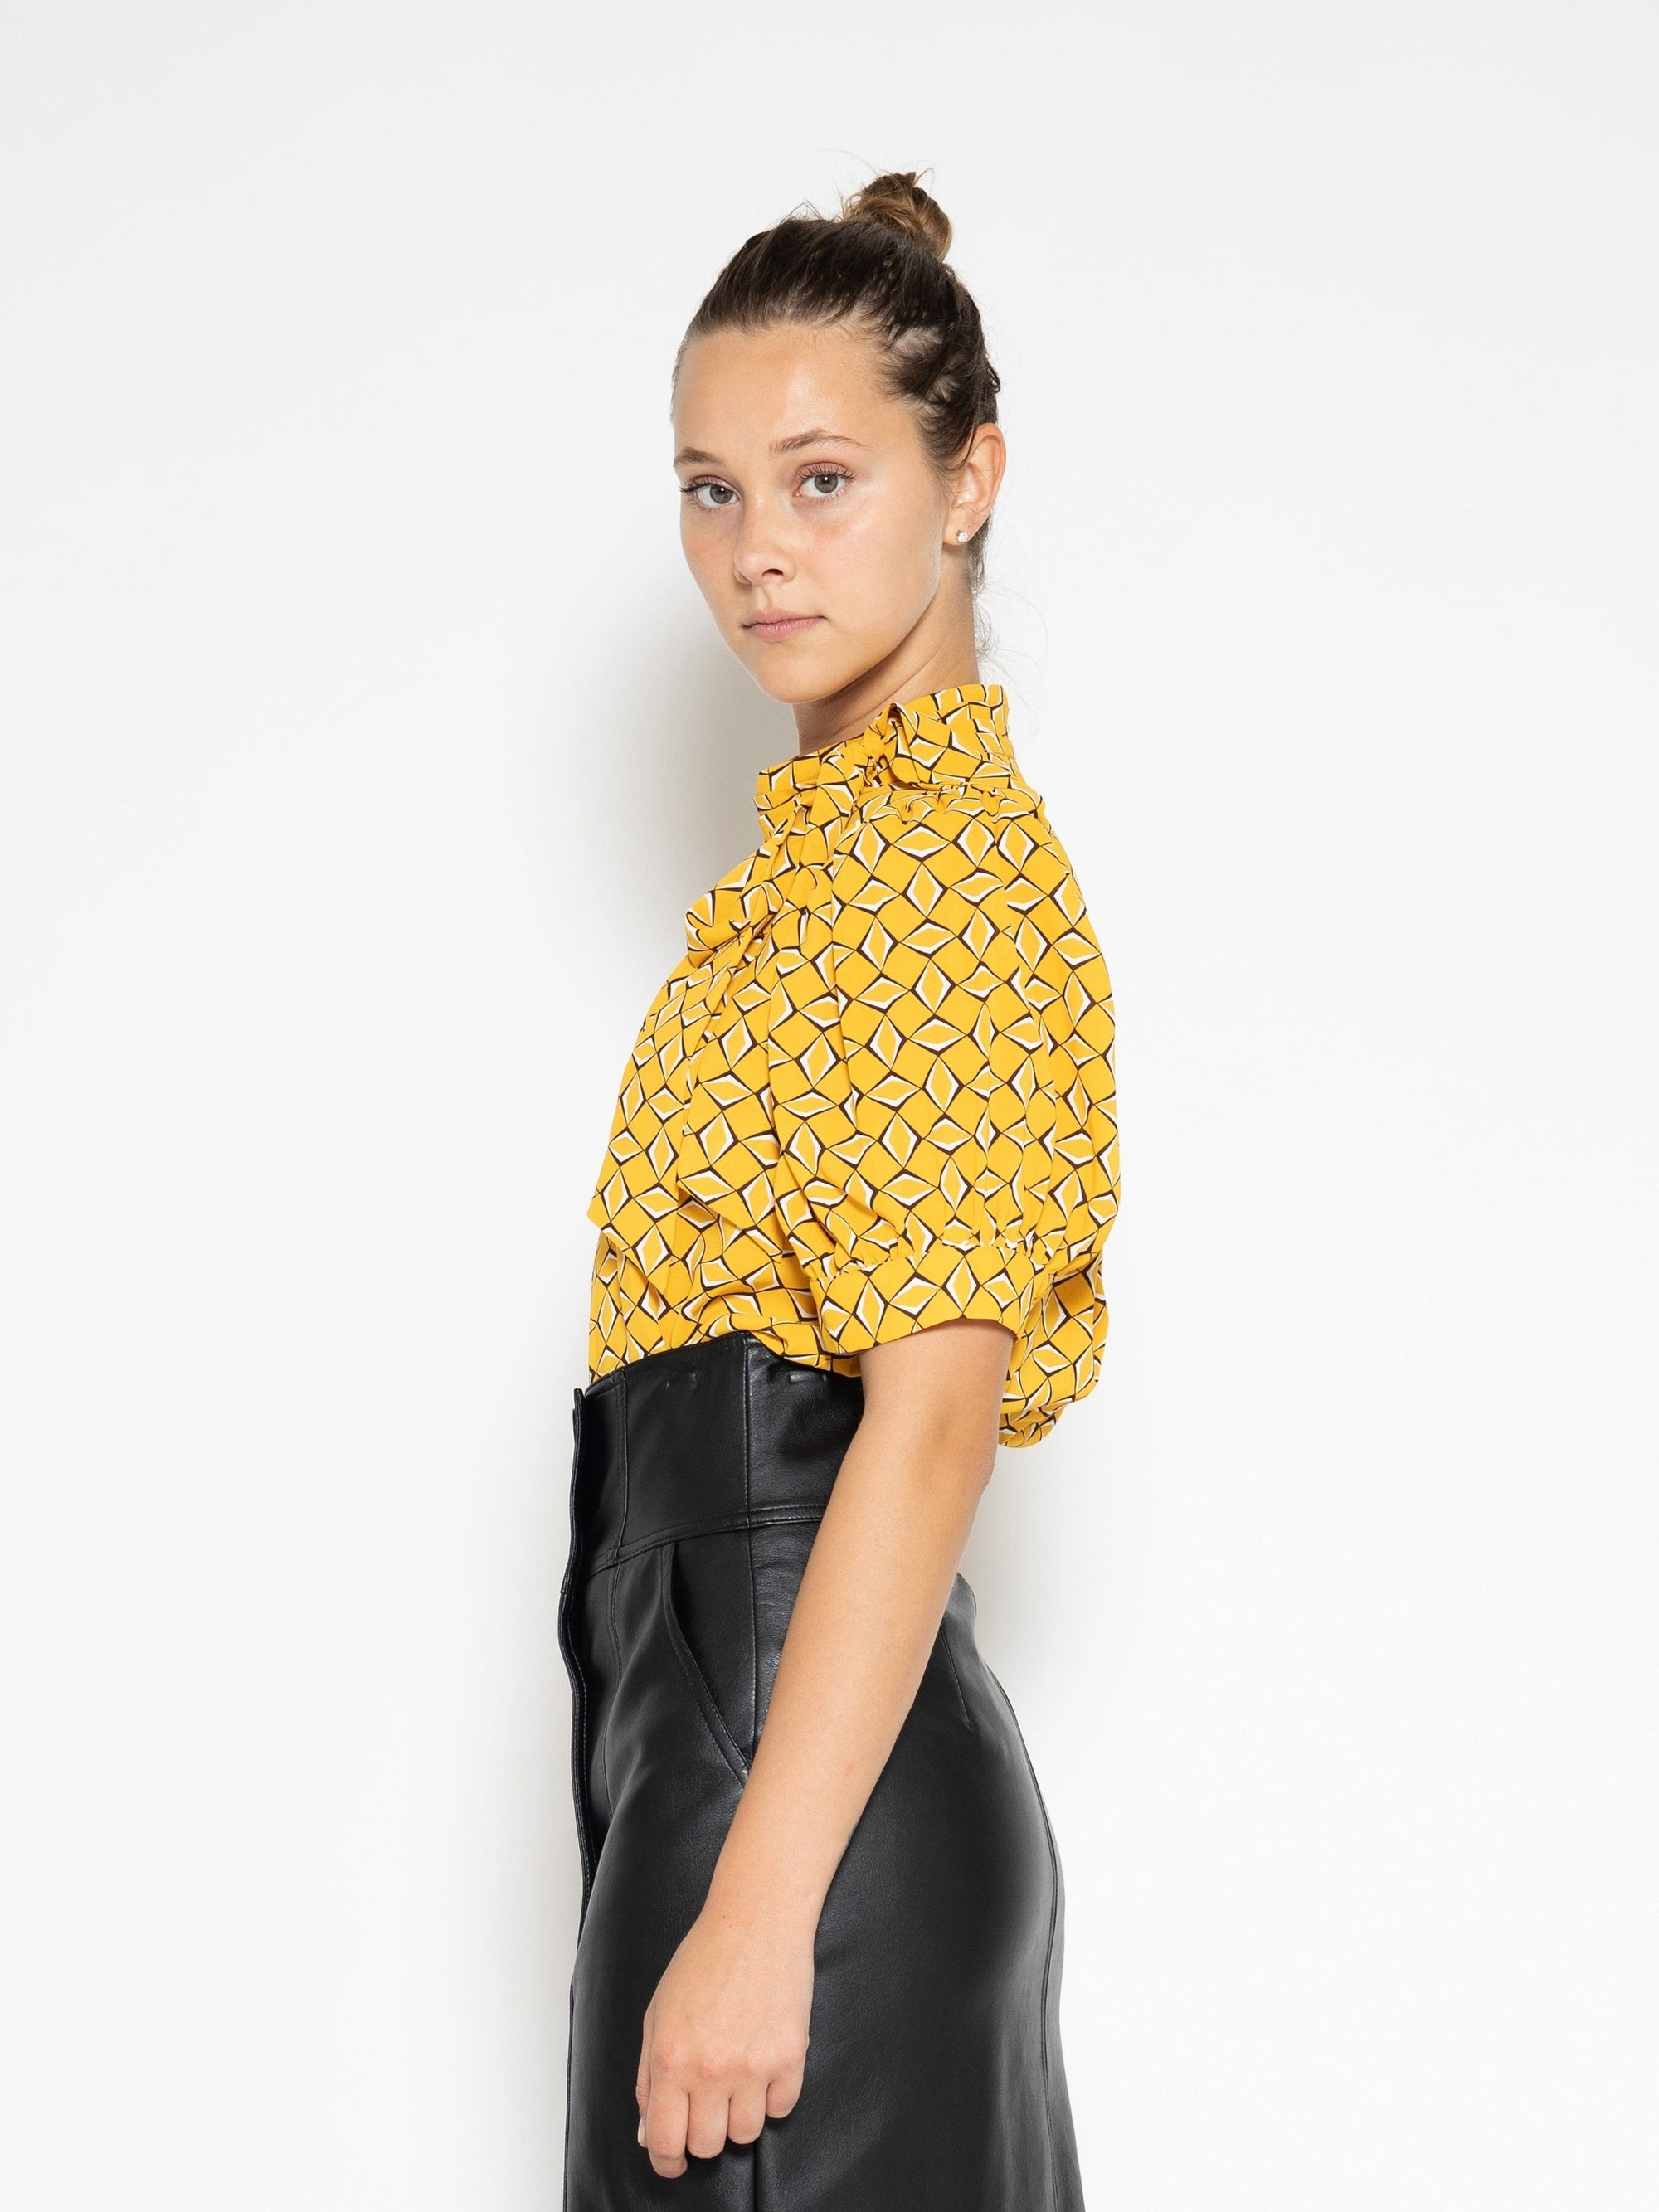 Graphic Printed Half Sleeve Top with Neck Bow TOP Gracia Fashion MUSTARD S